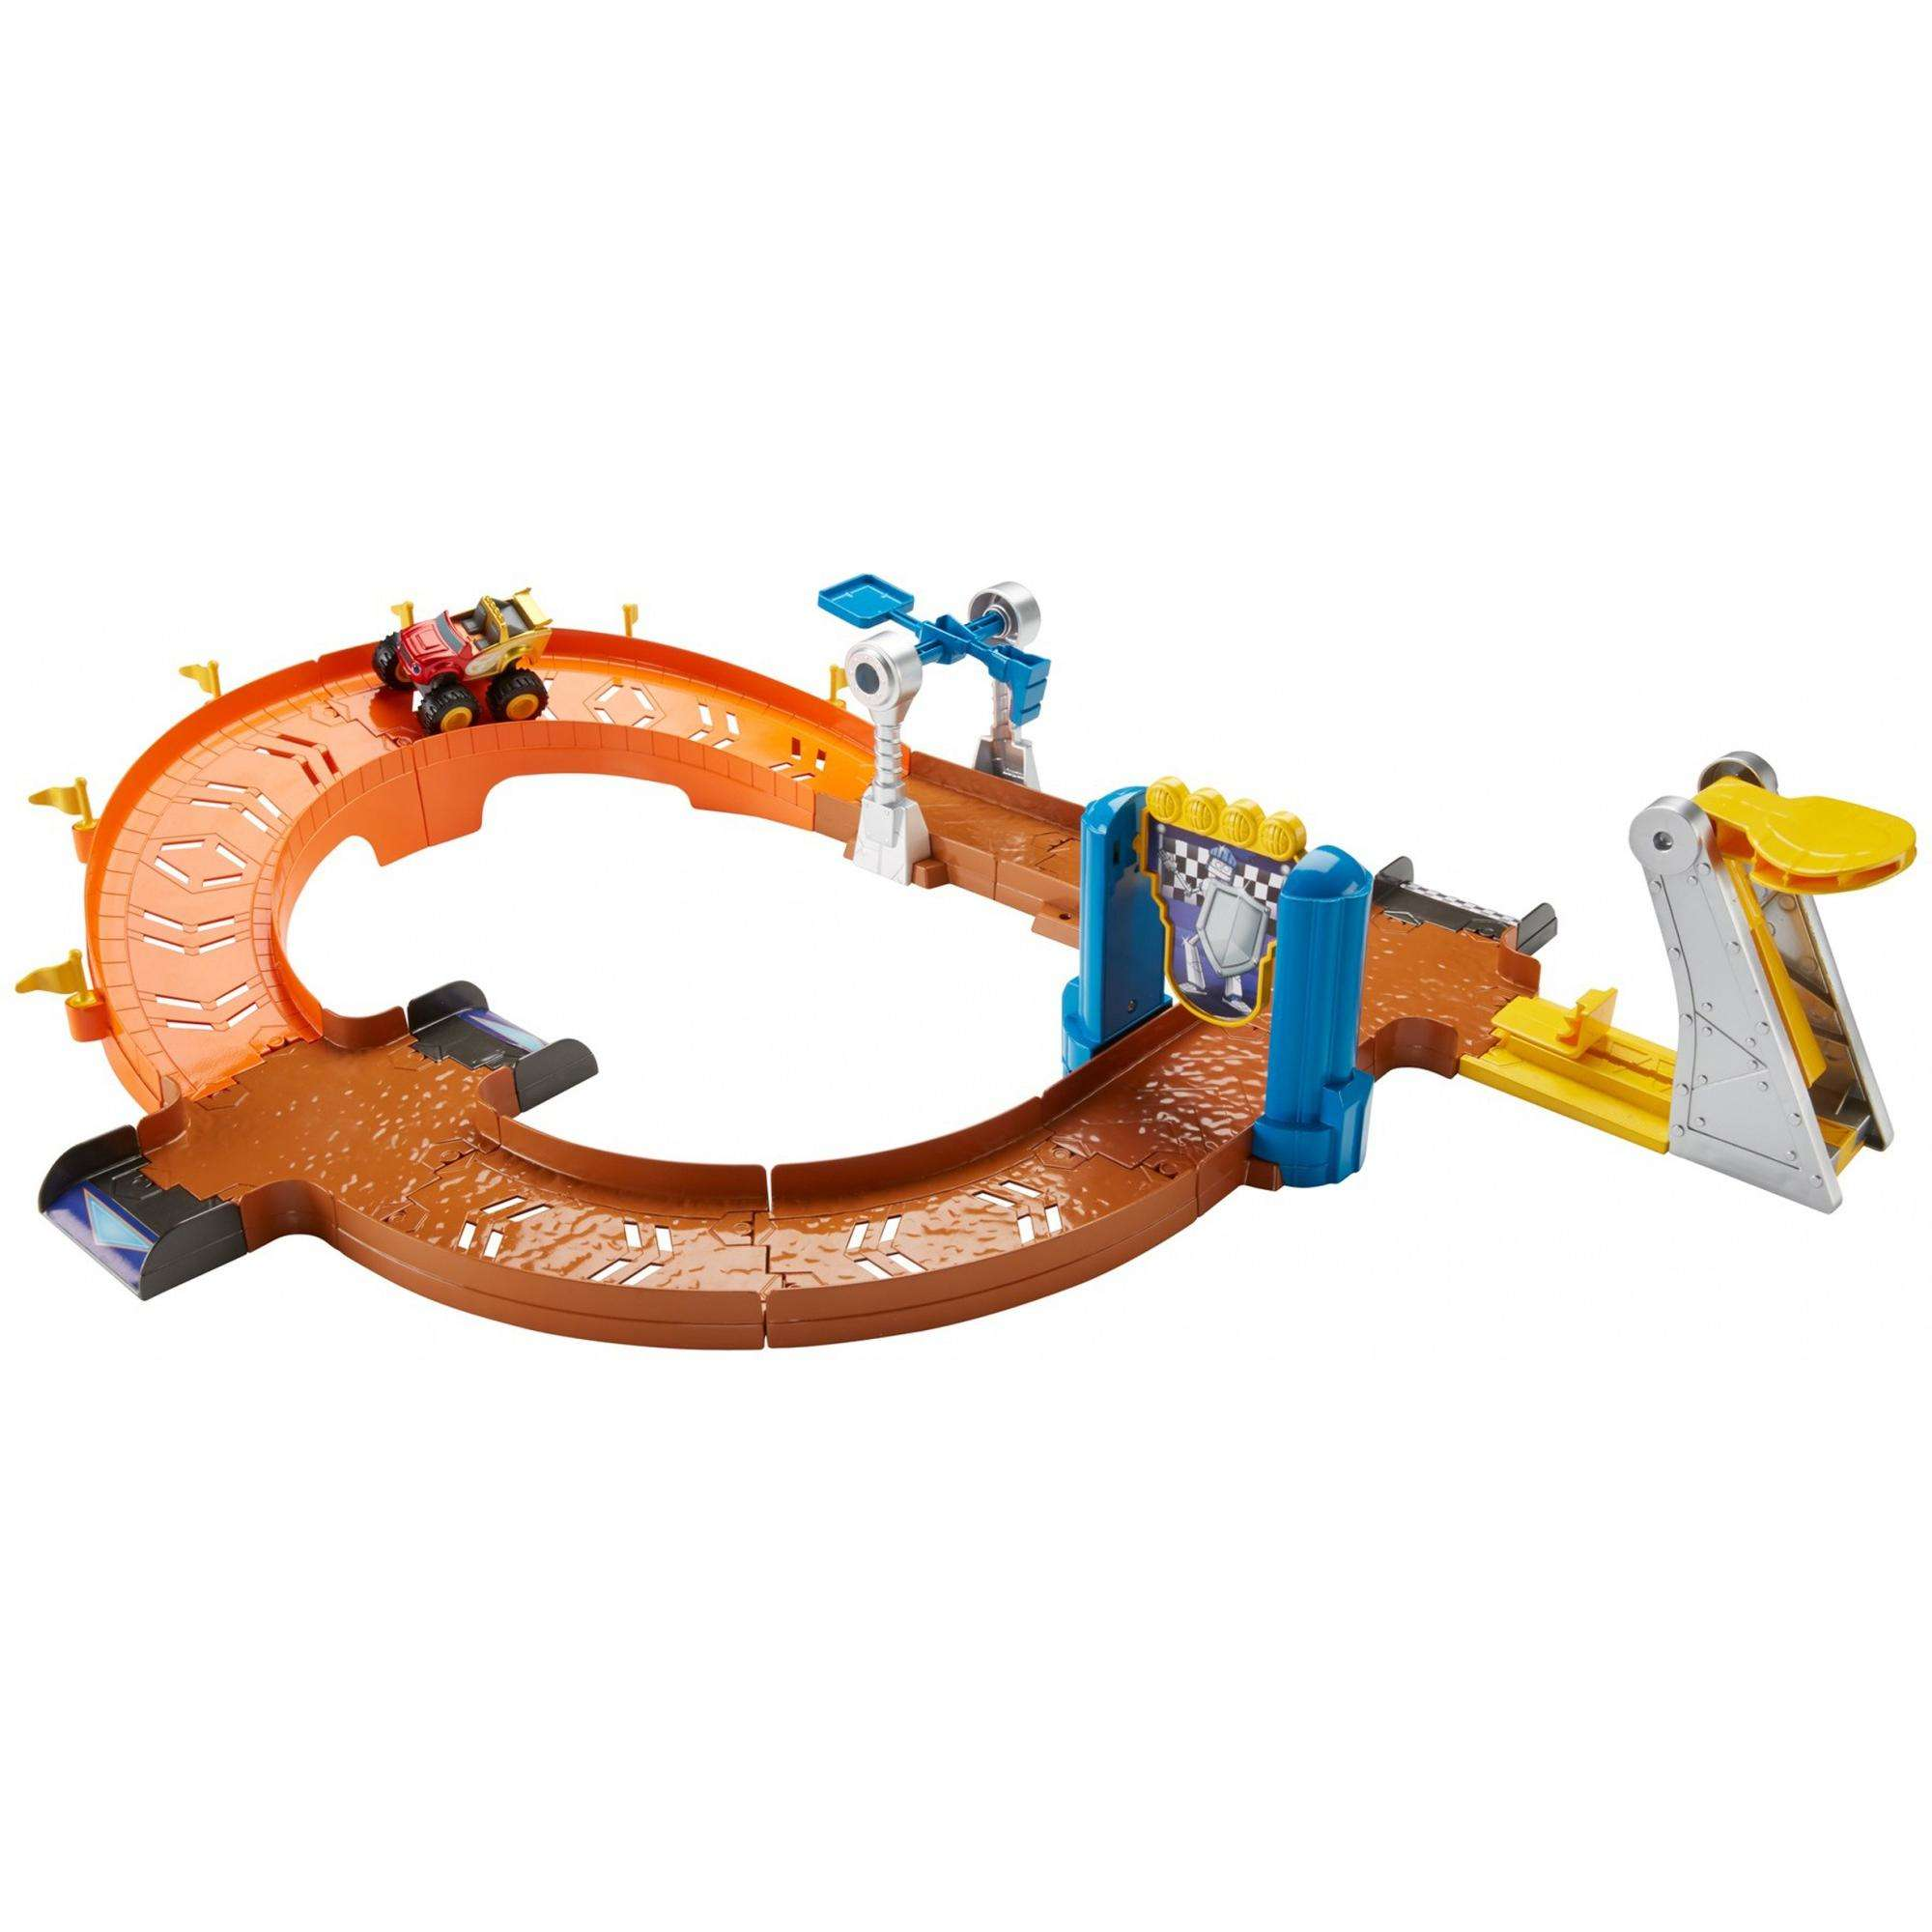 Fisher Price Nickelodeon Blaze and the Monster Machines BLAZE TO VICTORY SPEEDWAY by FISHER PRICE